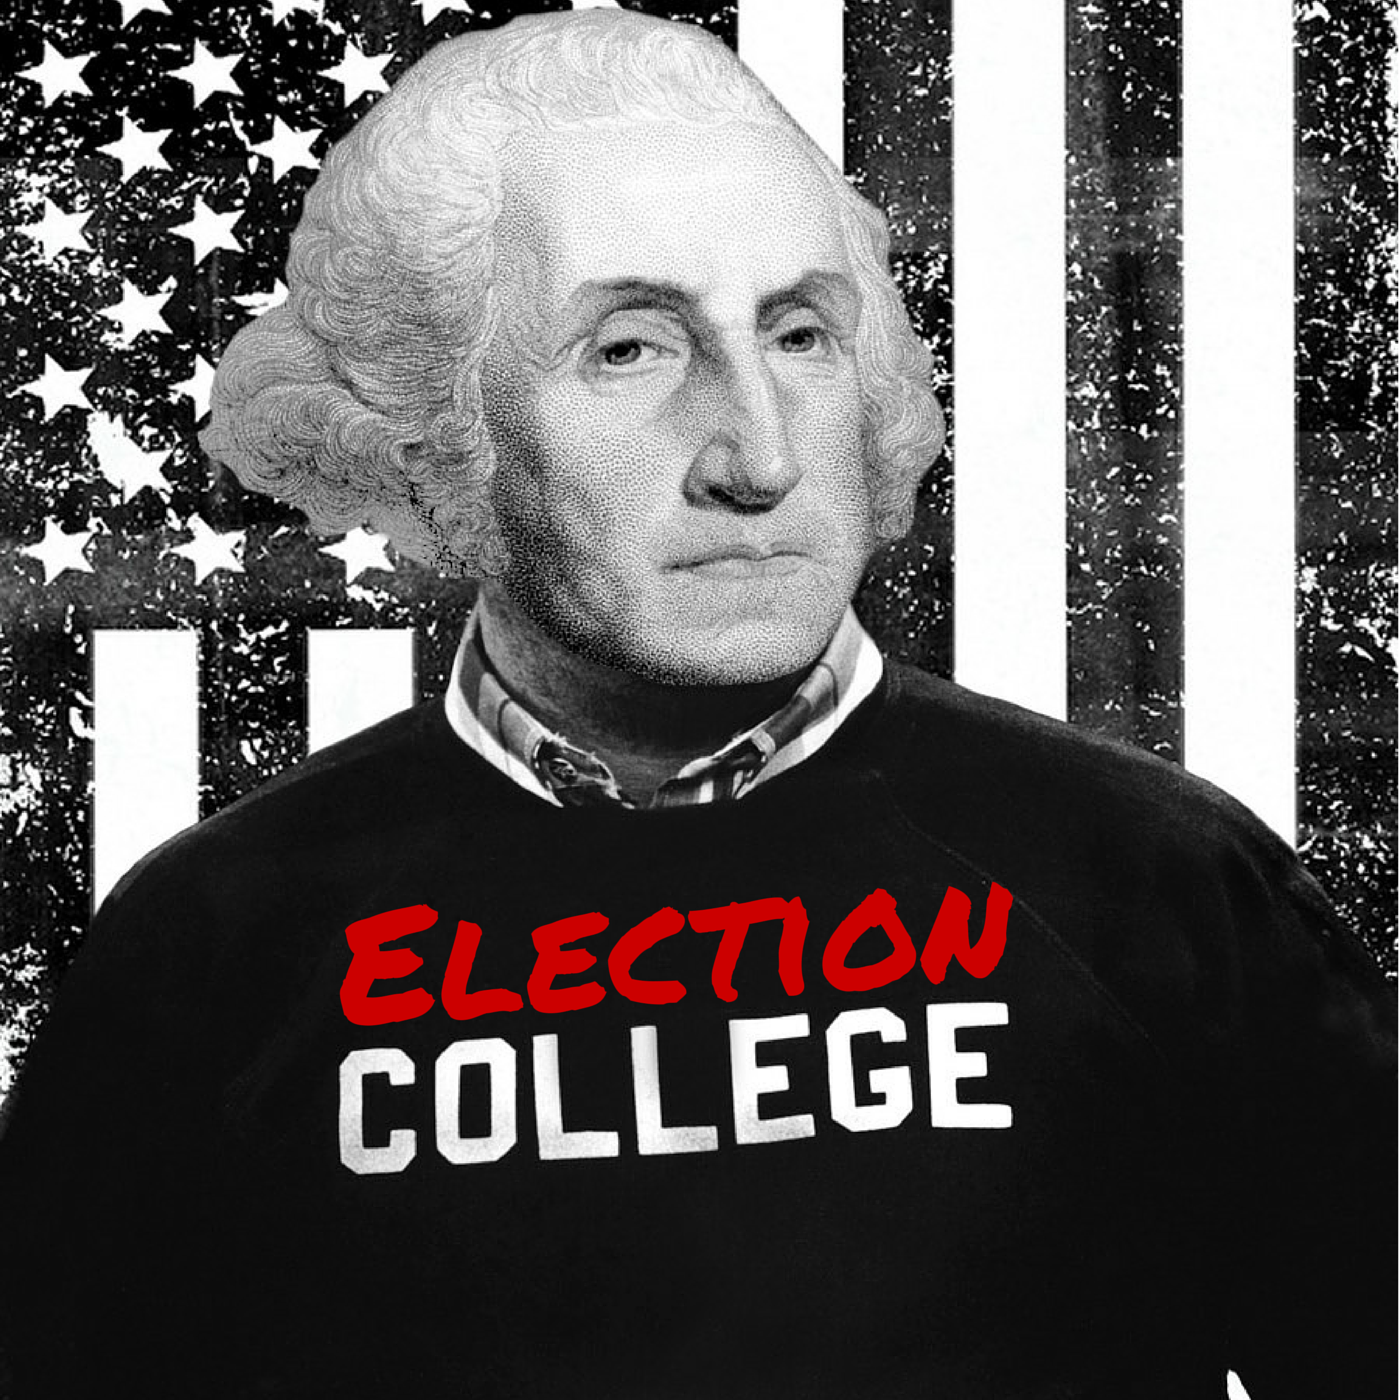 Do Territories Get To Vote? | Episode #081 | Election College: United States Presidential Election History